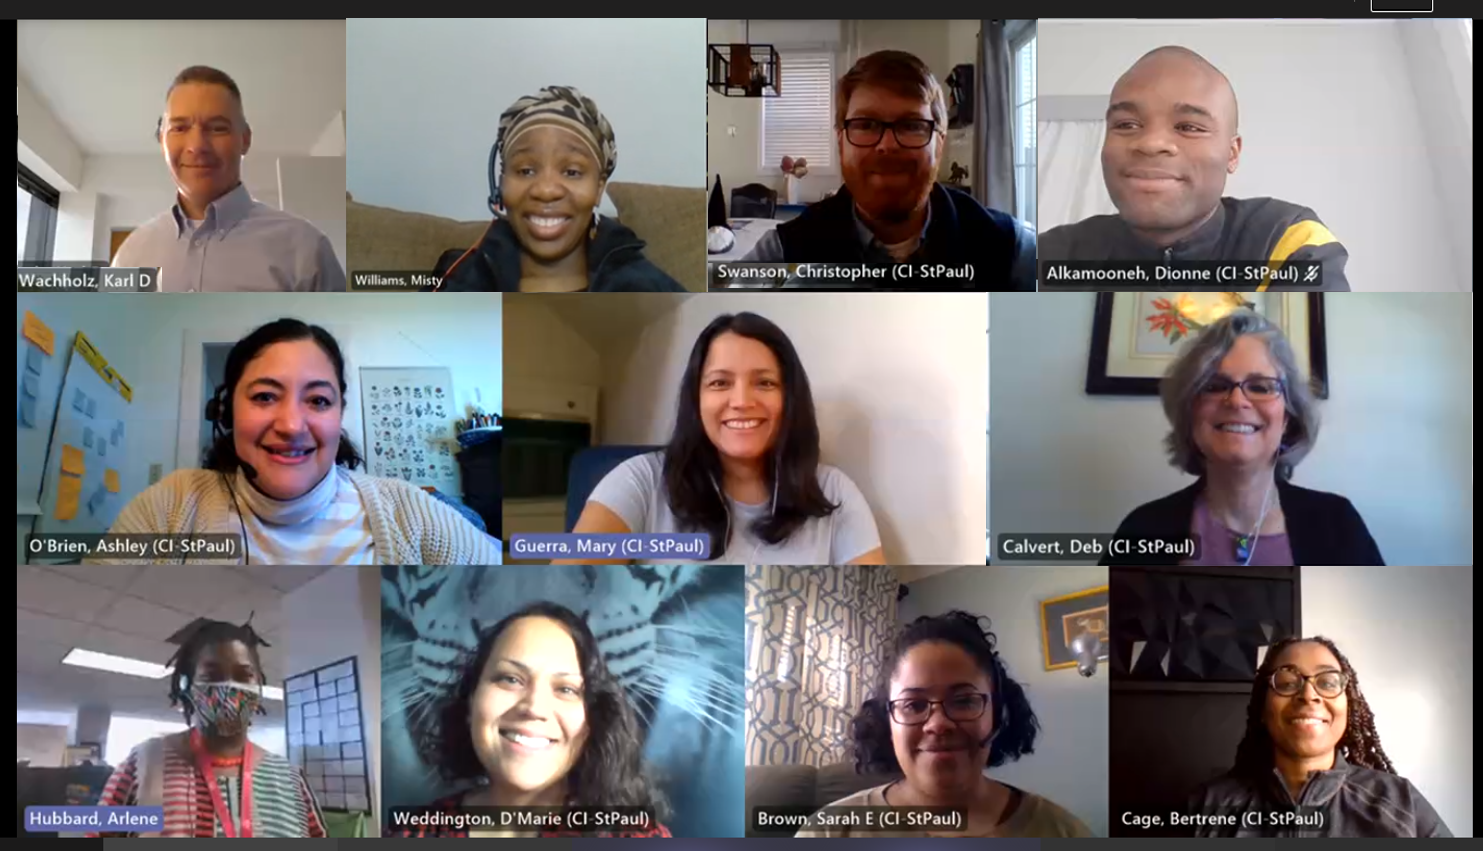 2021 planning committee members: gallery view in a virtual meeting (some members not pictured)